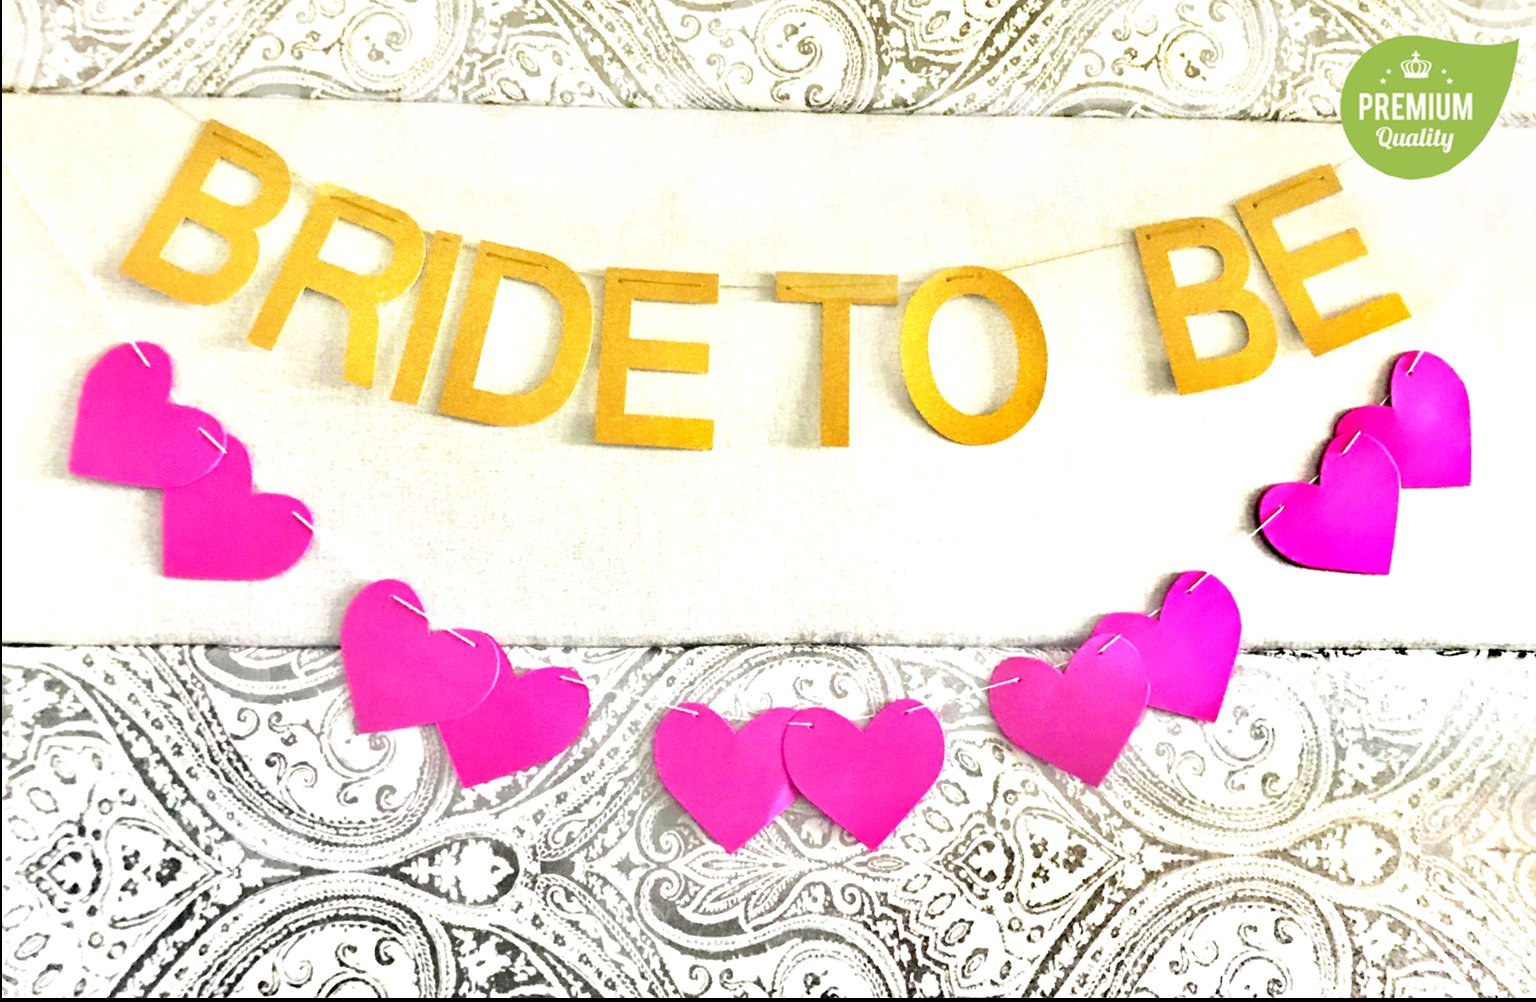 Bachelorette Party Decorations Kit Gold - Pink Heart Banner, Bridal Shower Sash, Bride to Be Banner, Bachelorette Party Straws, Bride Tribe Pins, Gold Balloons by Montpelle (Image #6)